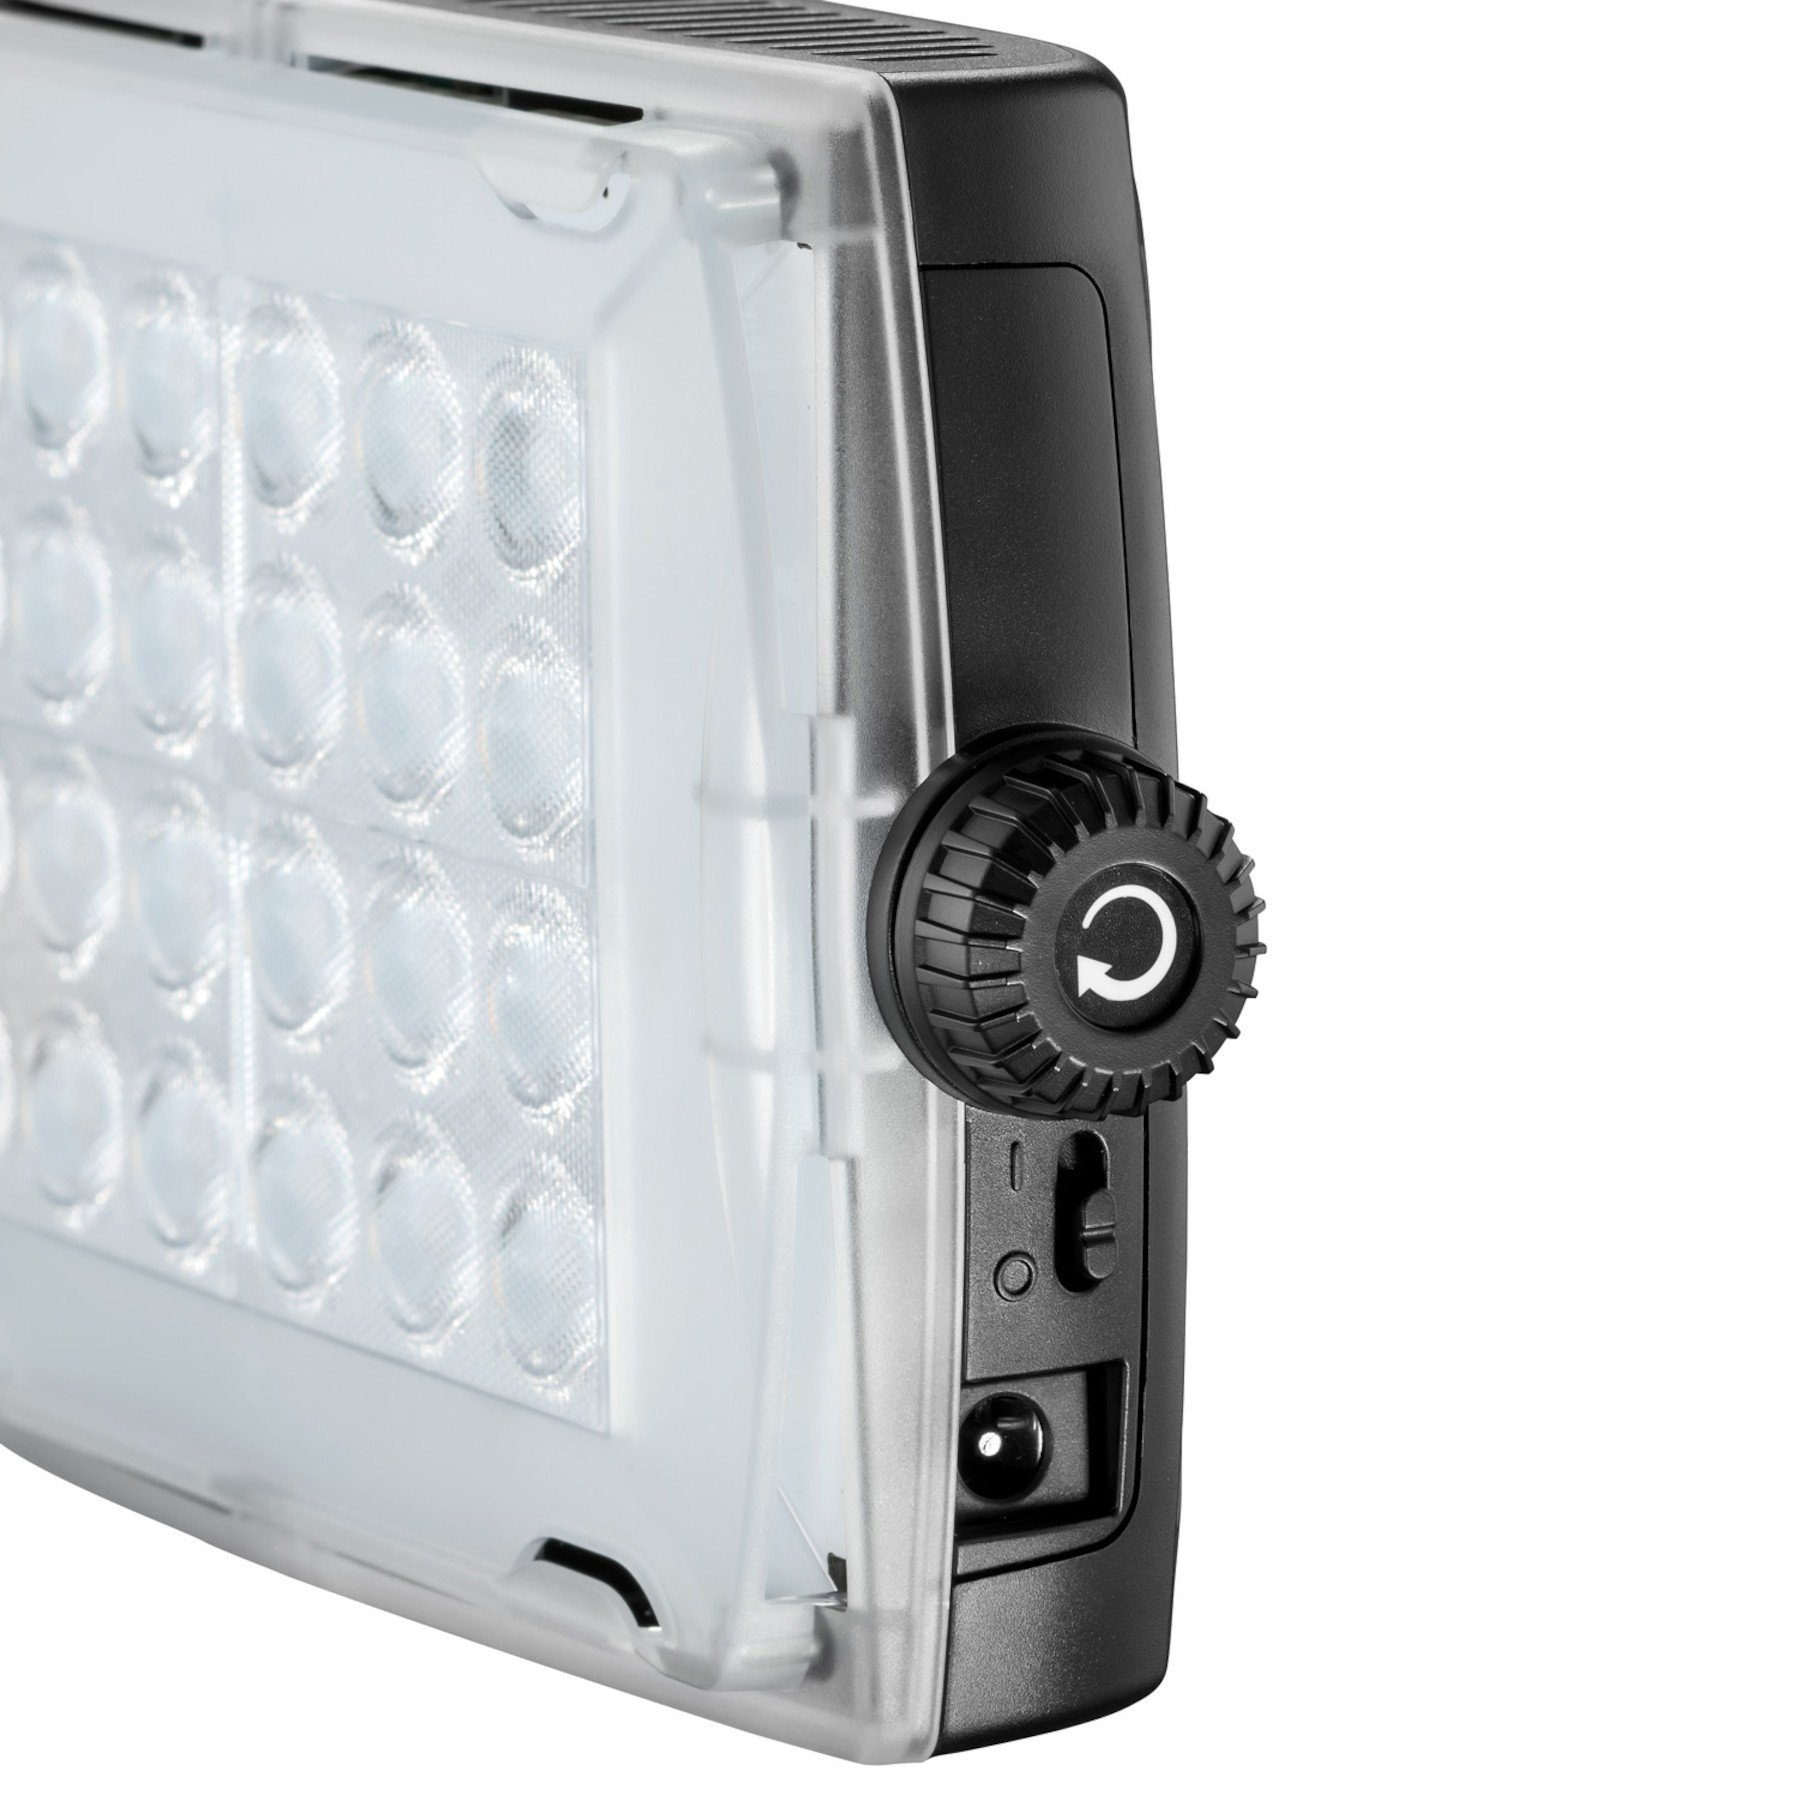 LED Fixture with Dimming Control and Gel Filter